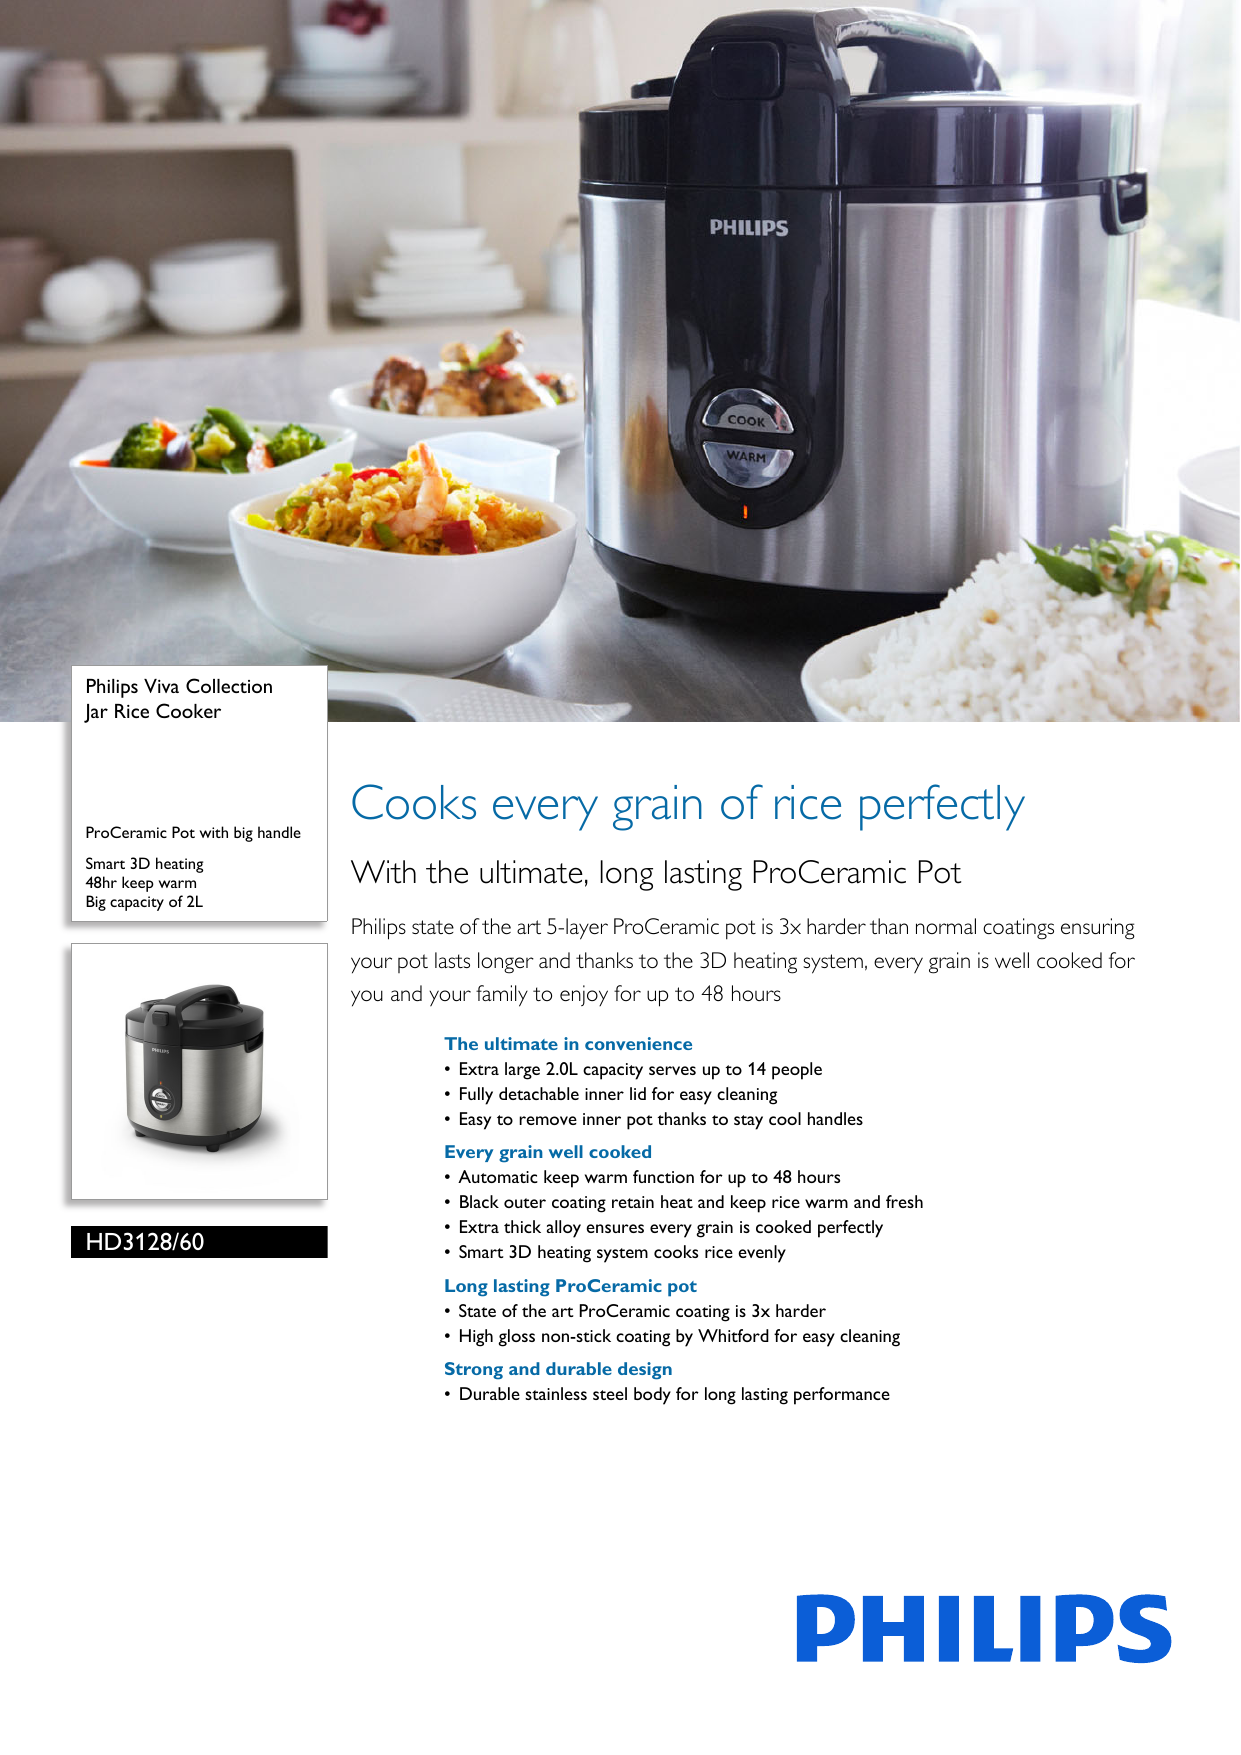 Philips Daily Collection Jar Rice Cooker Hd312732 Merah Daftar 2l Basic Green Hd3118 30 Free Sunlight Hd3128 60 User Manual Leaflet Pss Engmy